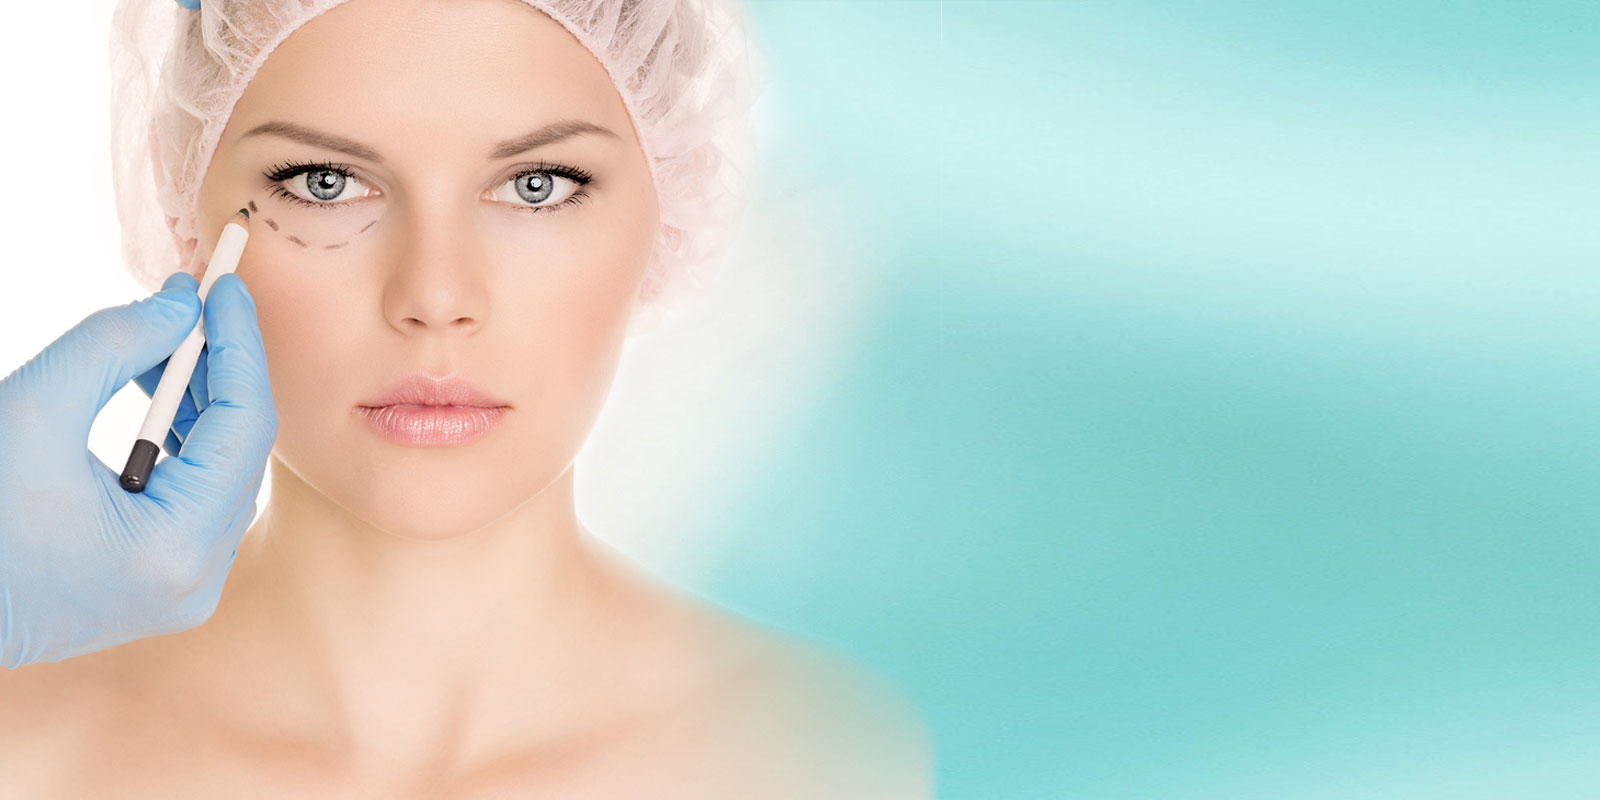 COSMETIC ENHANCEMENT AND CARE FOR YOUR AESTHETIC NEEDS